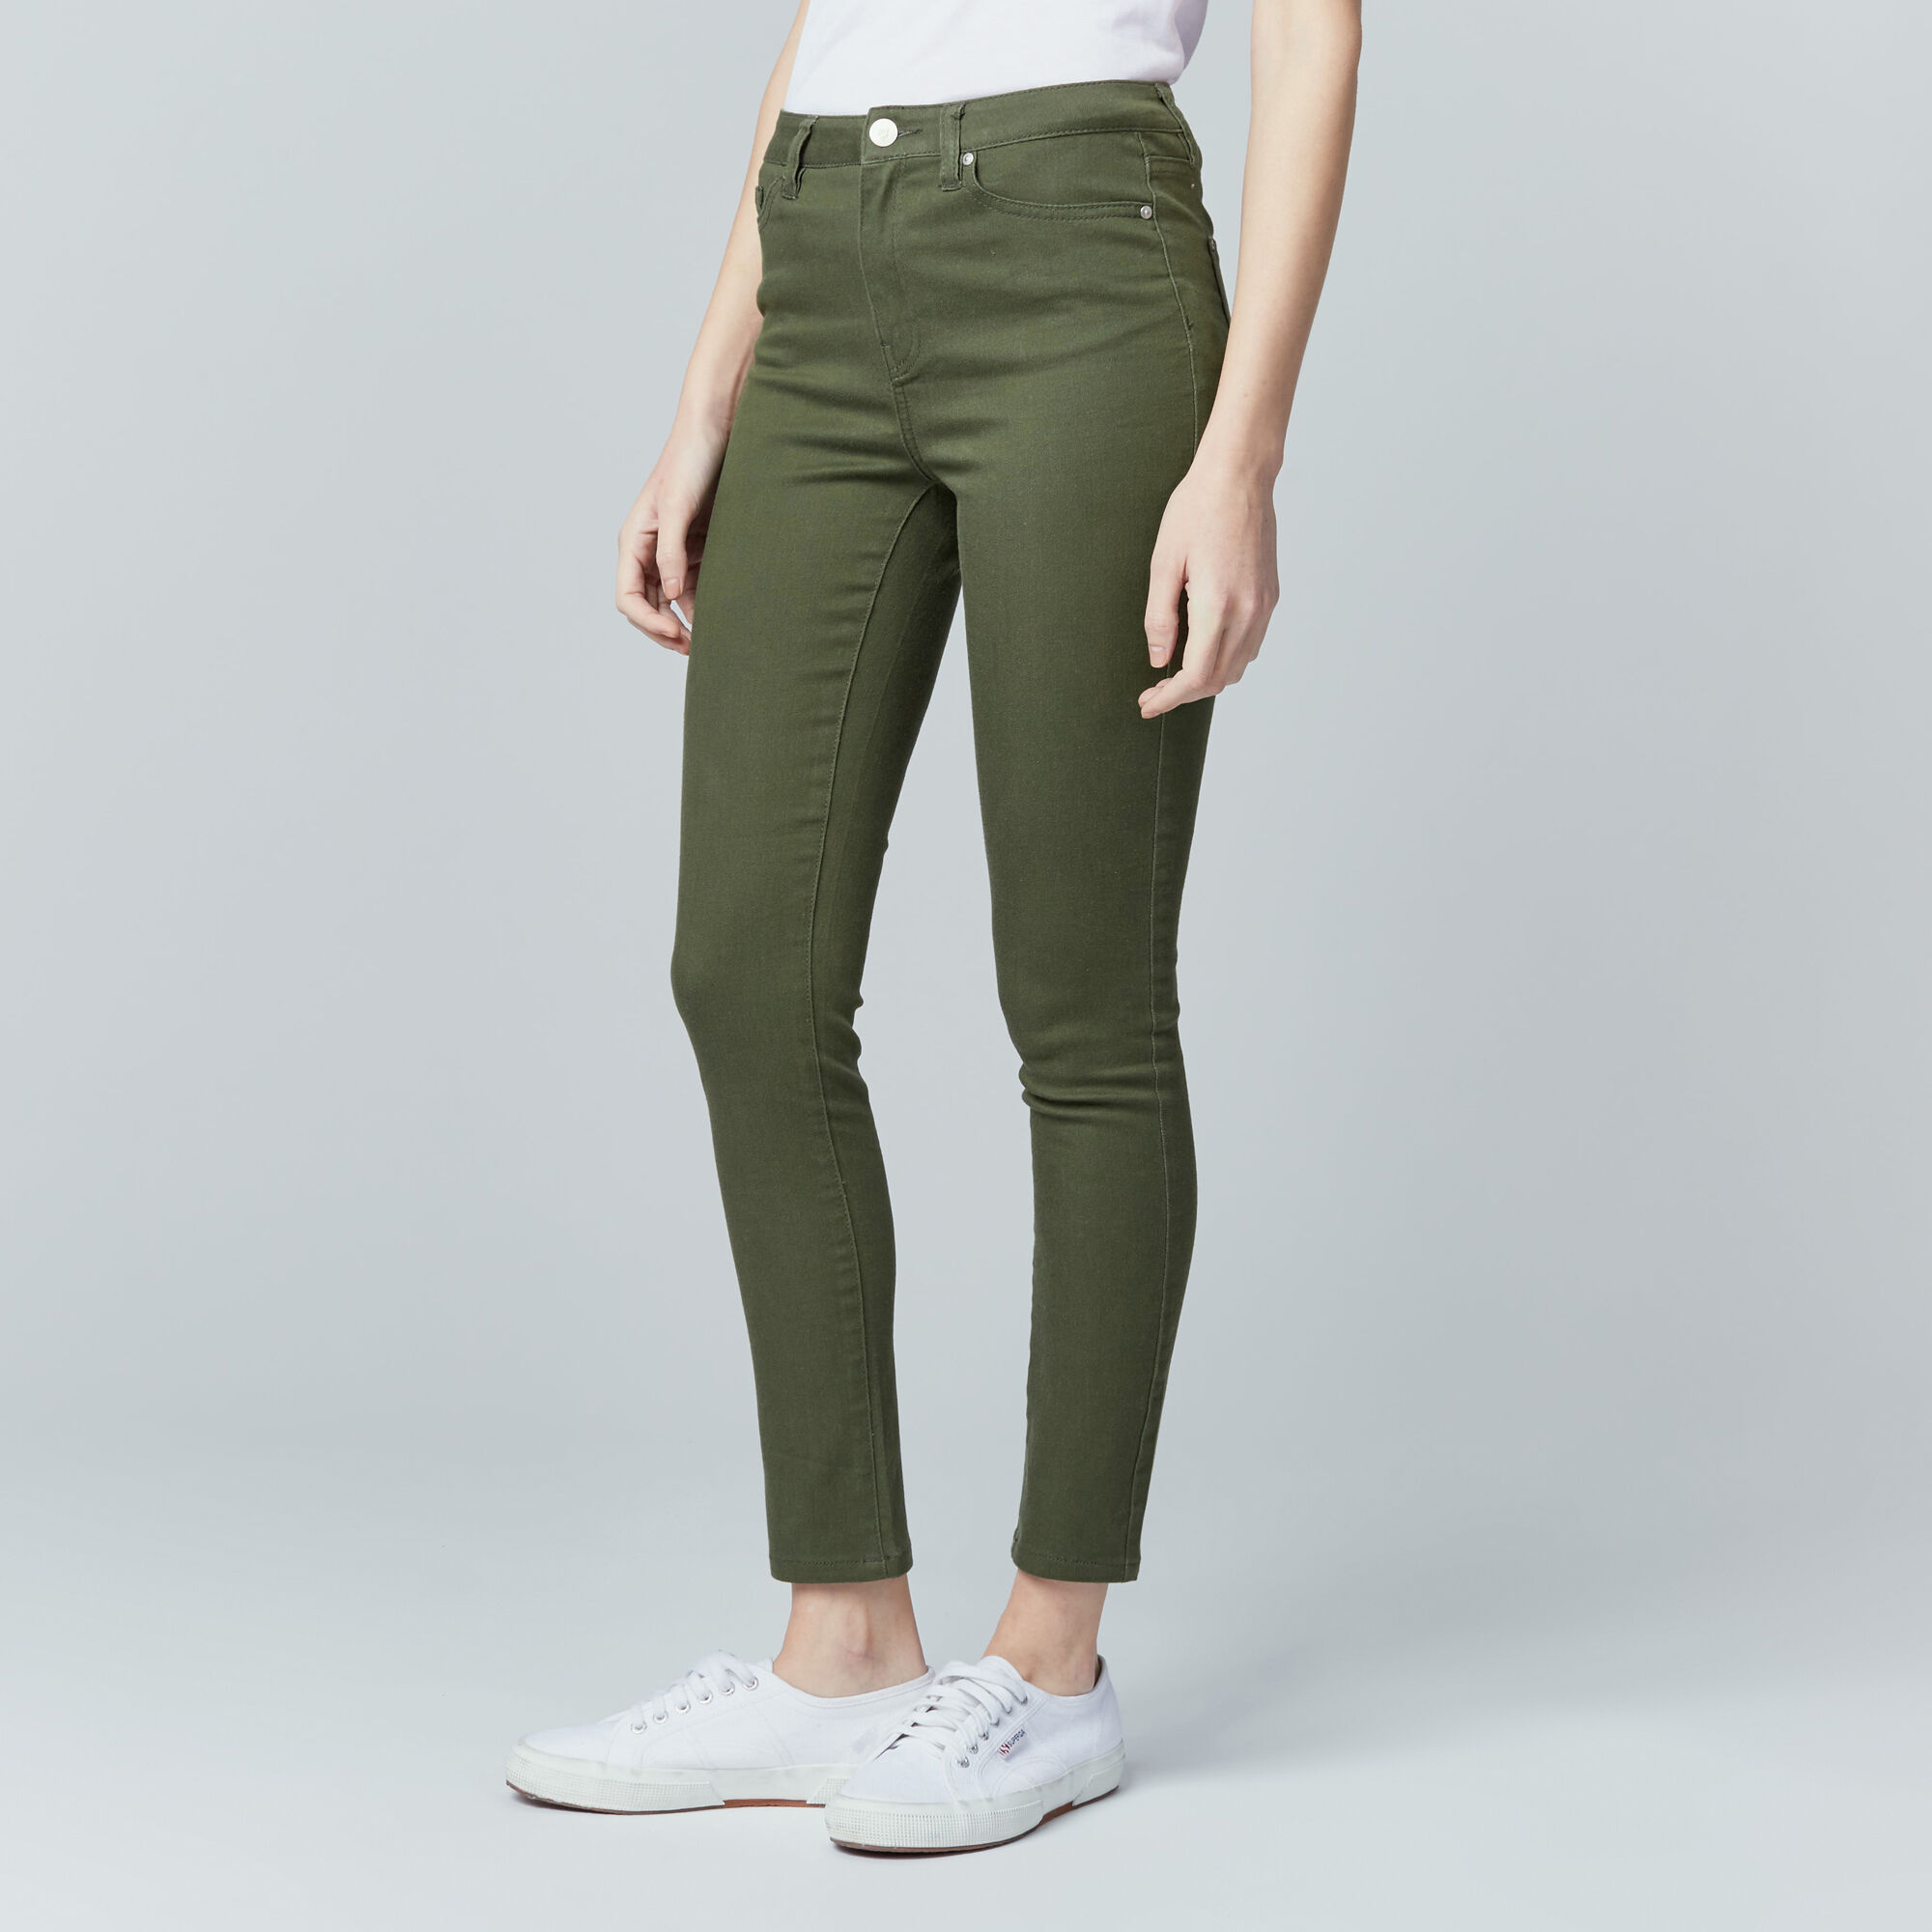 Warehouse, Crop Skinny Cut Jeans Khaki 1